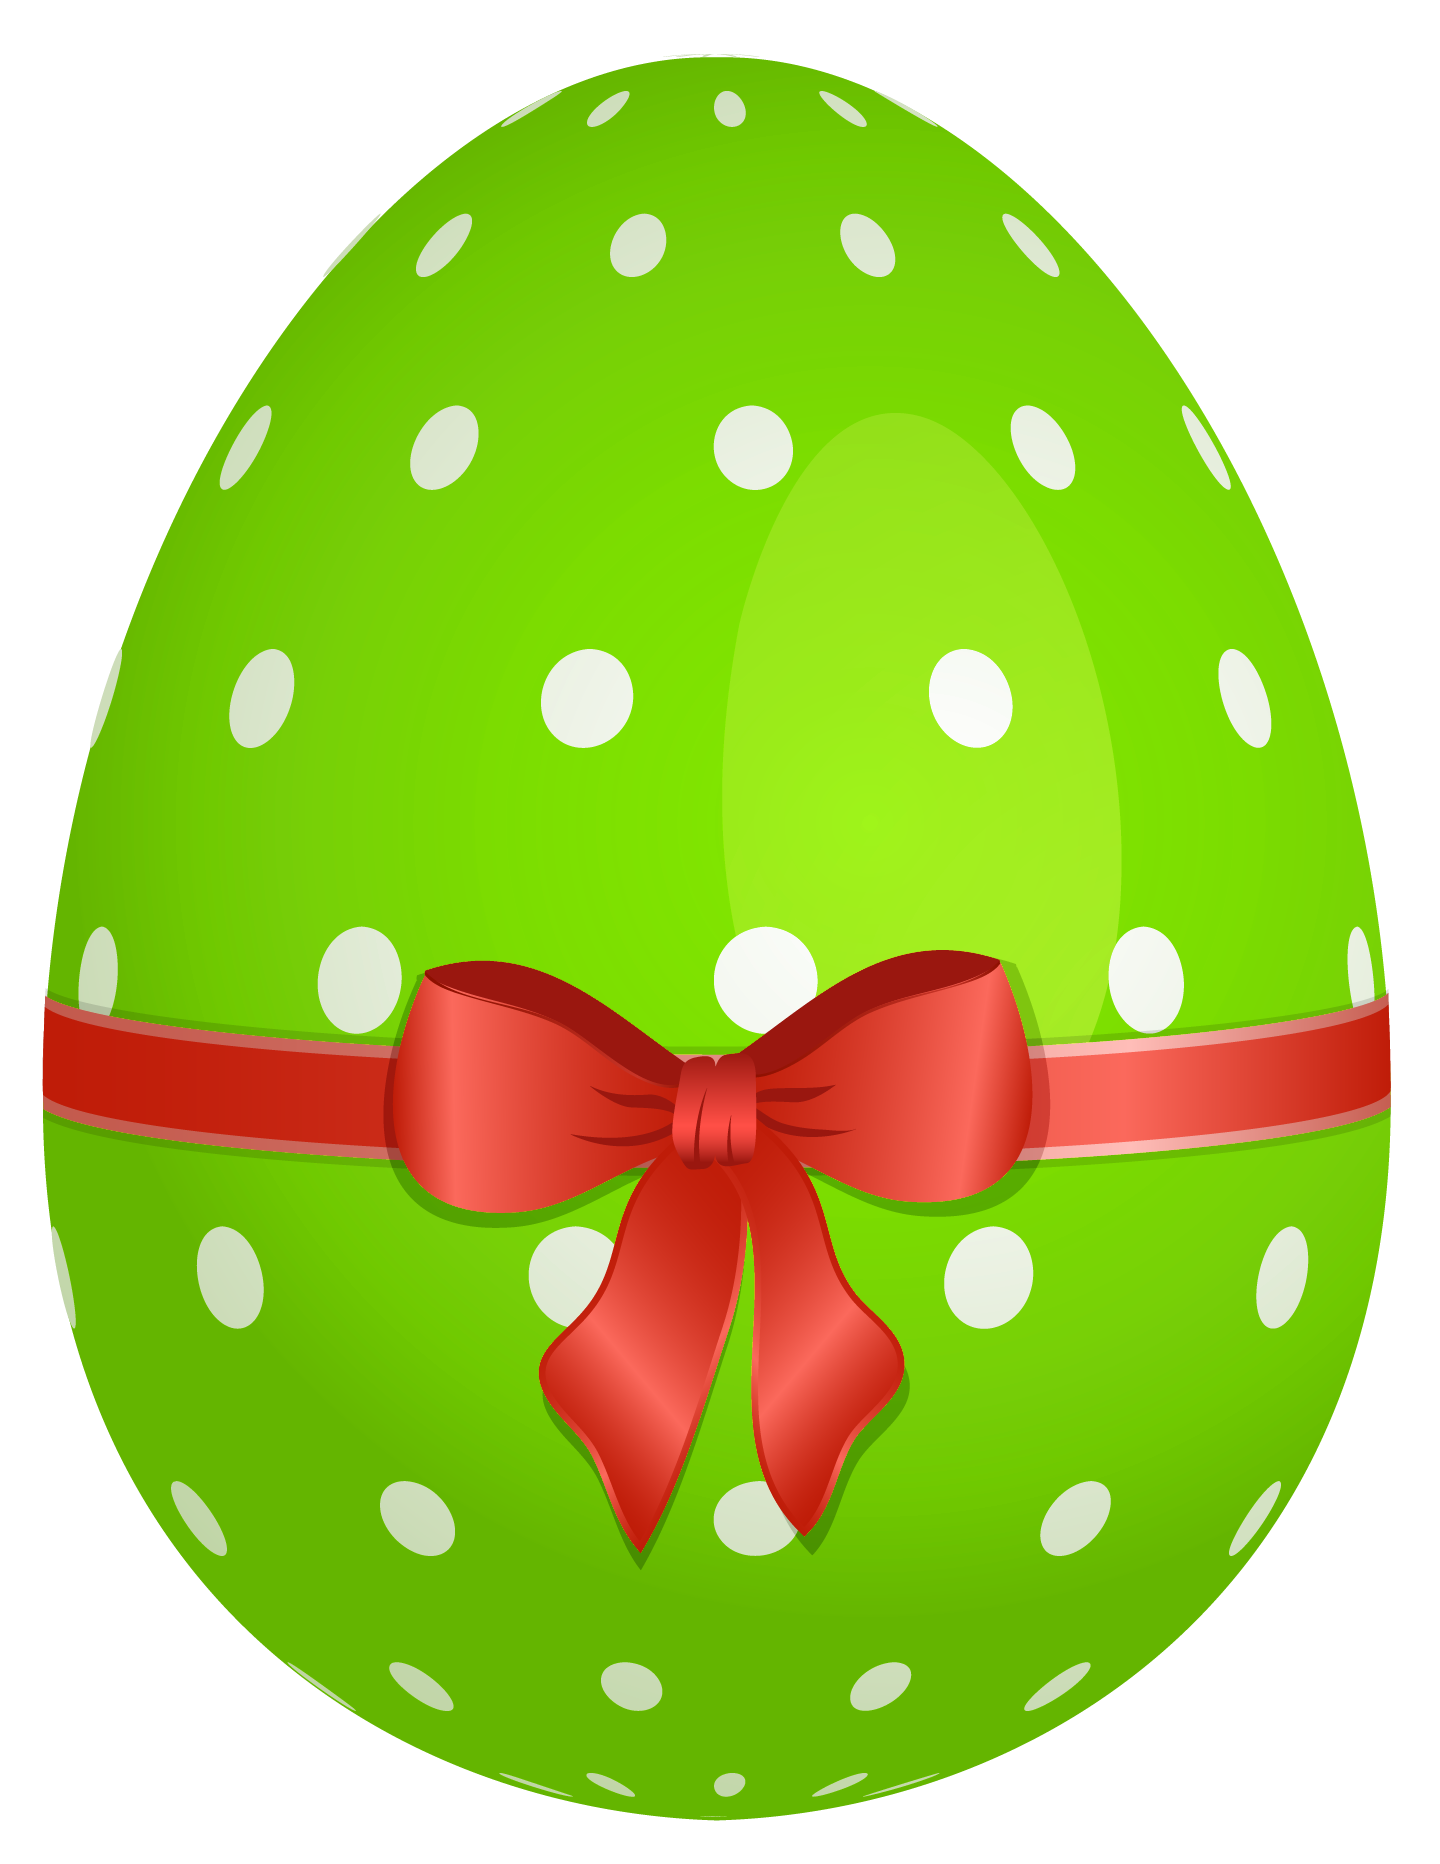 Free download Microsoft Gallery Easter Eggs Clipart for your.